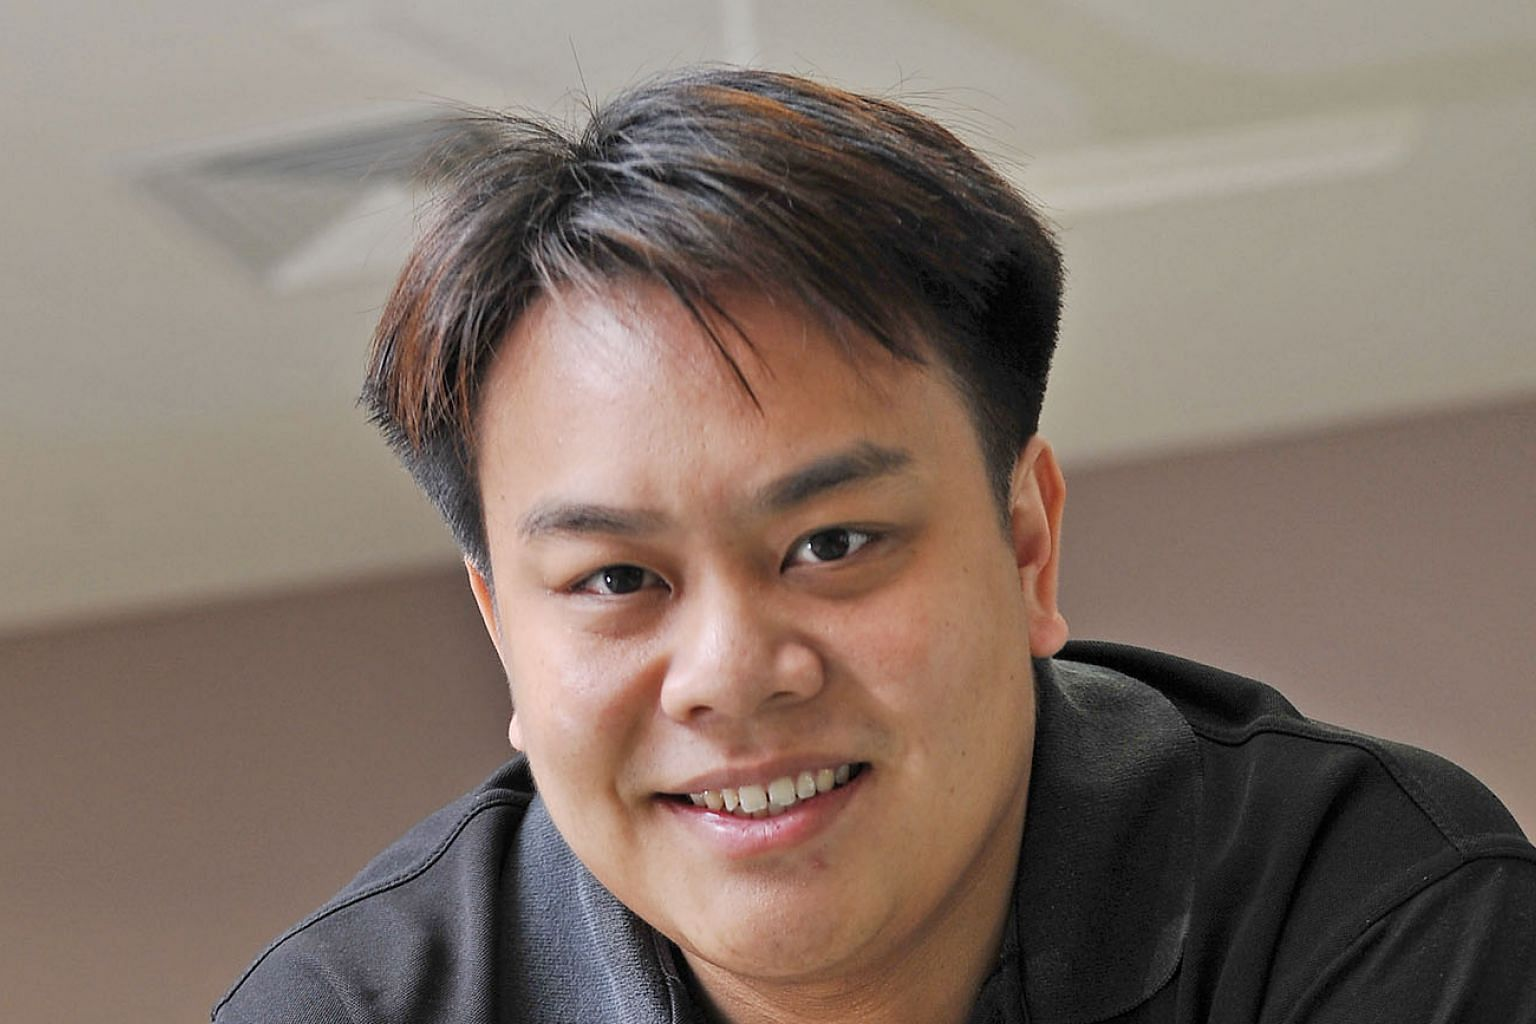 Mr Delane Lim helps vulnerable young people.